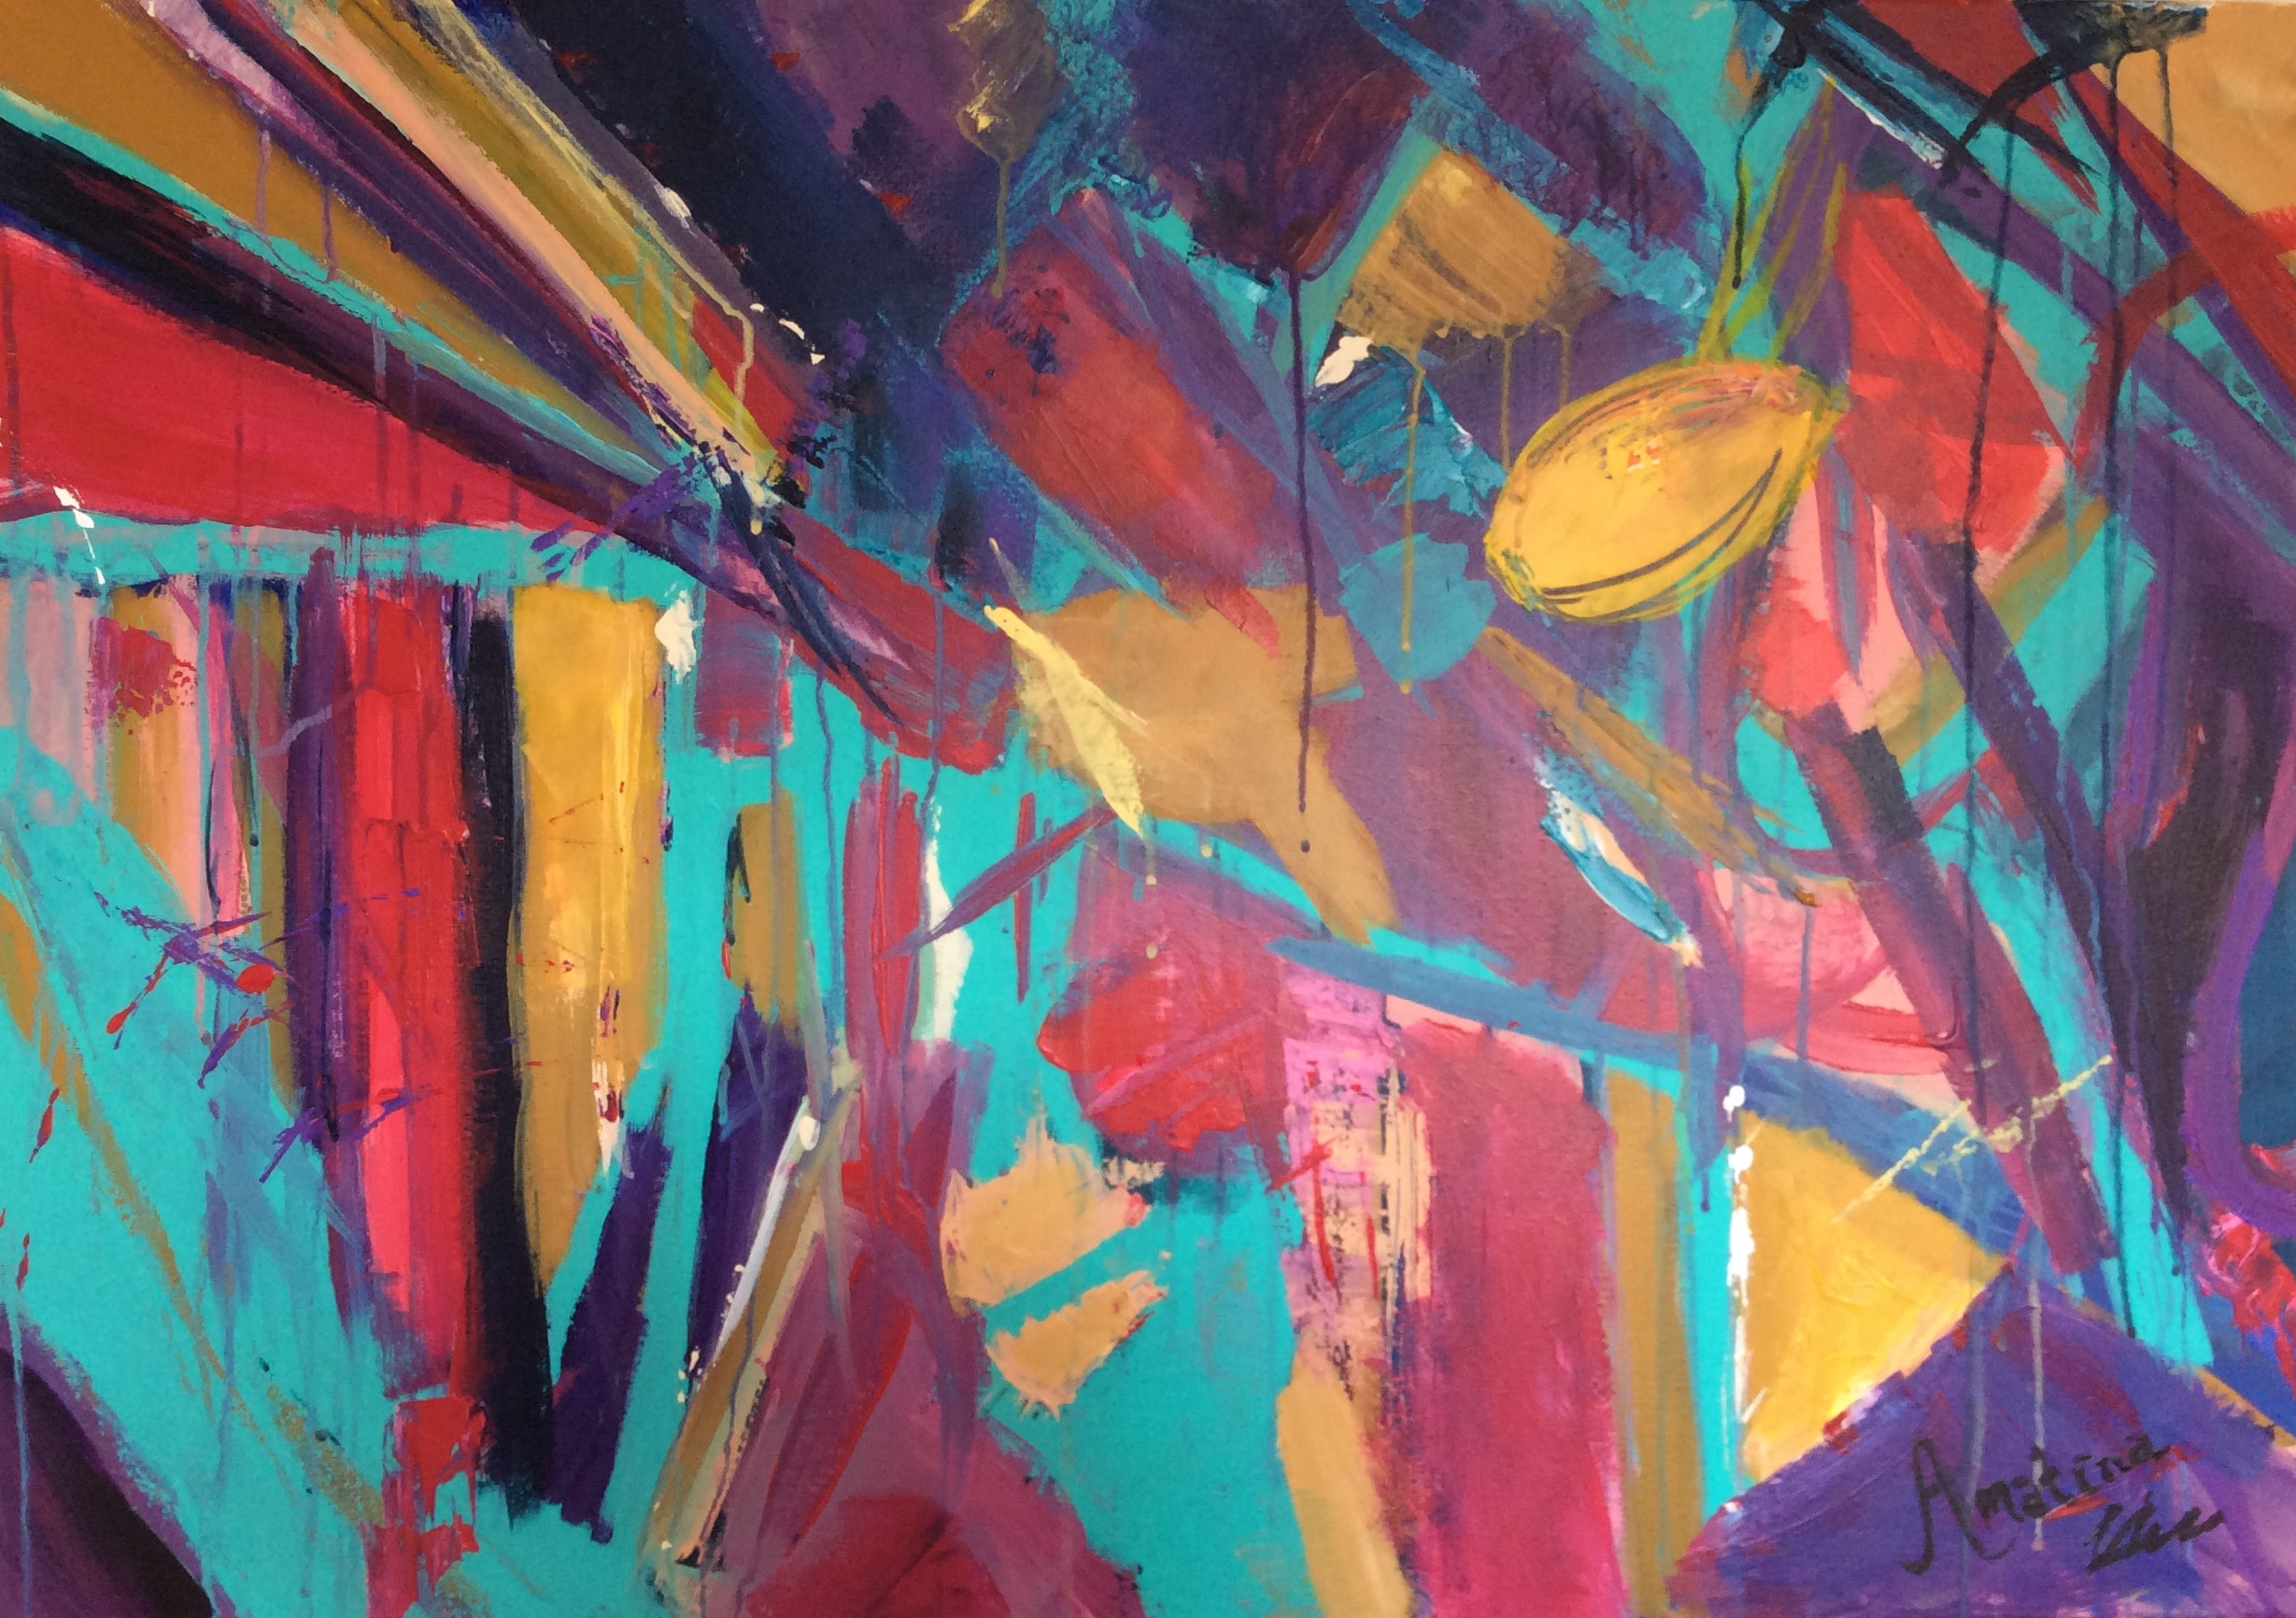 Mhaf Featured Artist Mahlia Amatina The Abstract